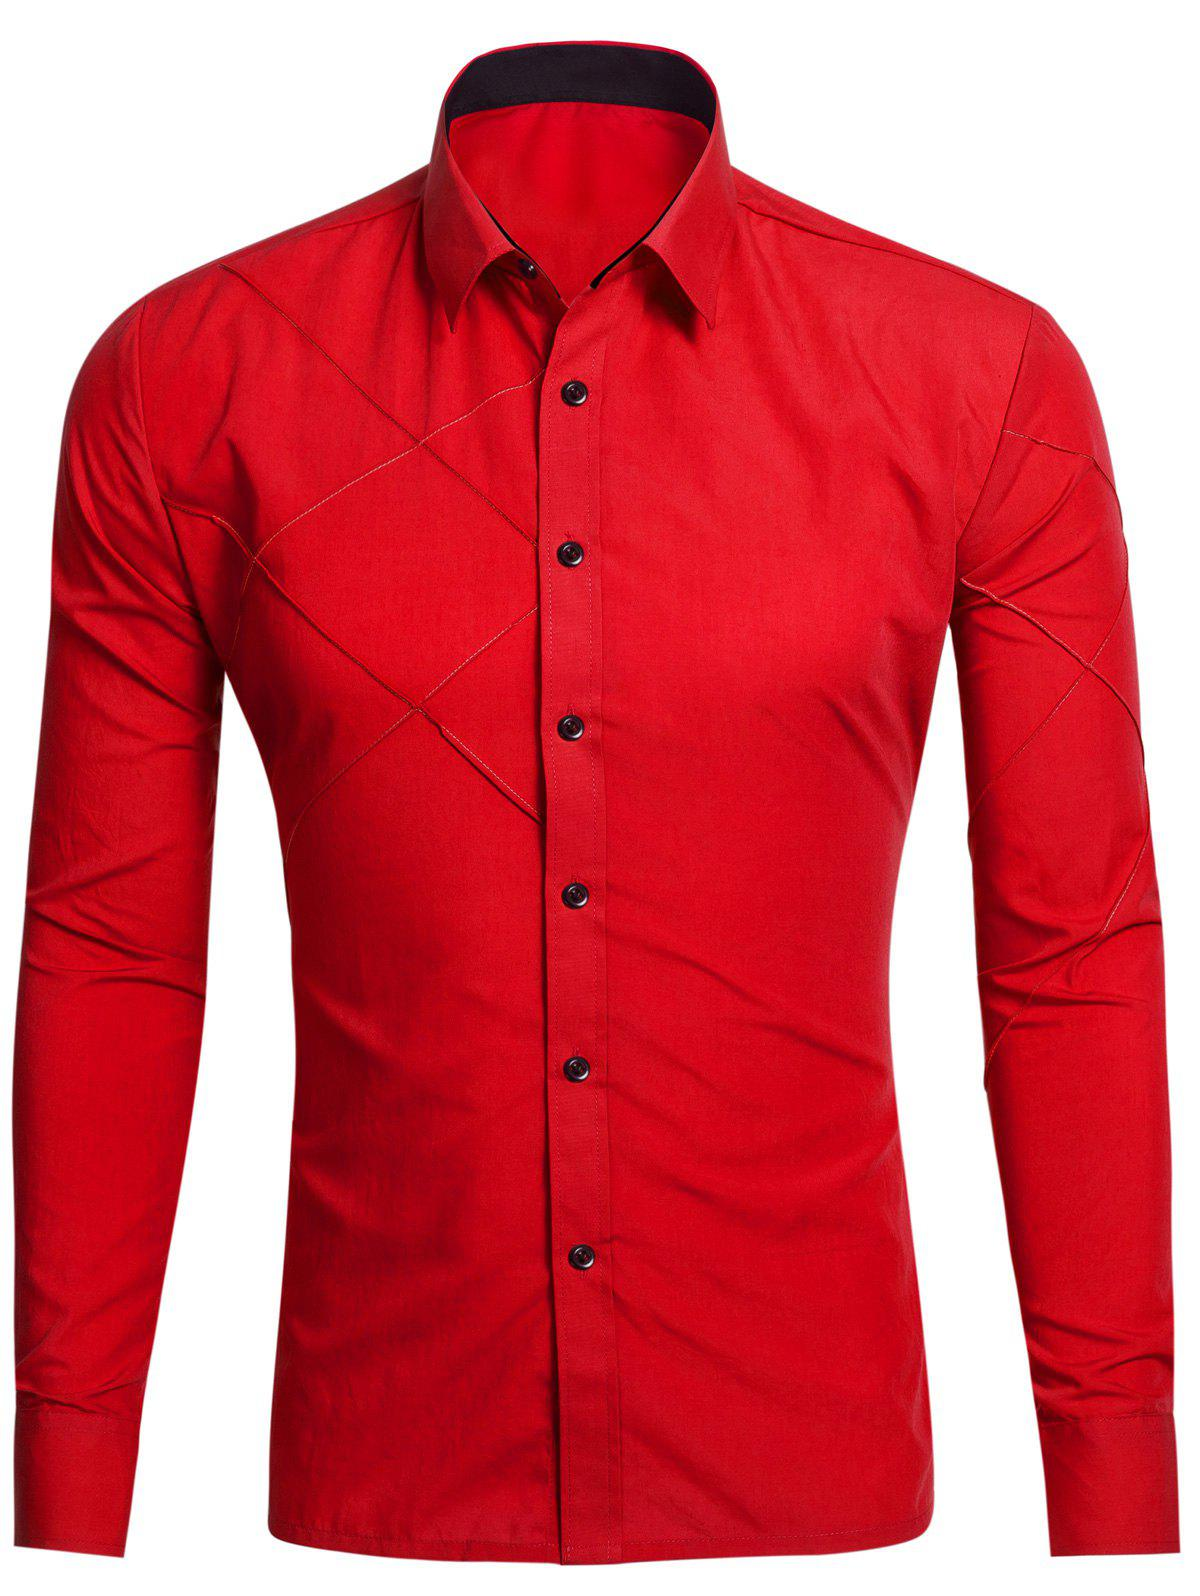 Piquez à manches longues Button Up Shirt - Rouge 2XL